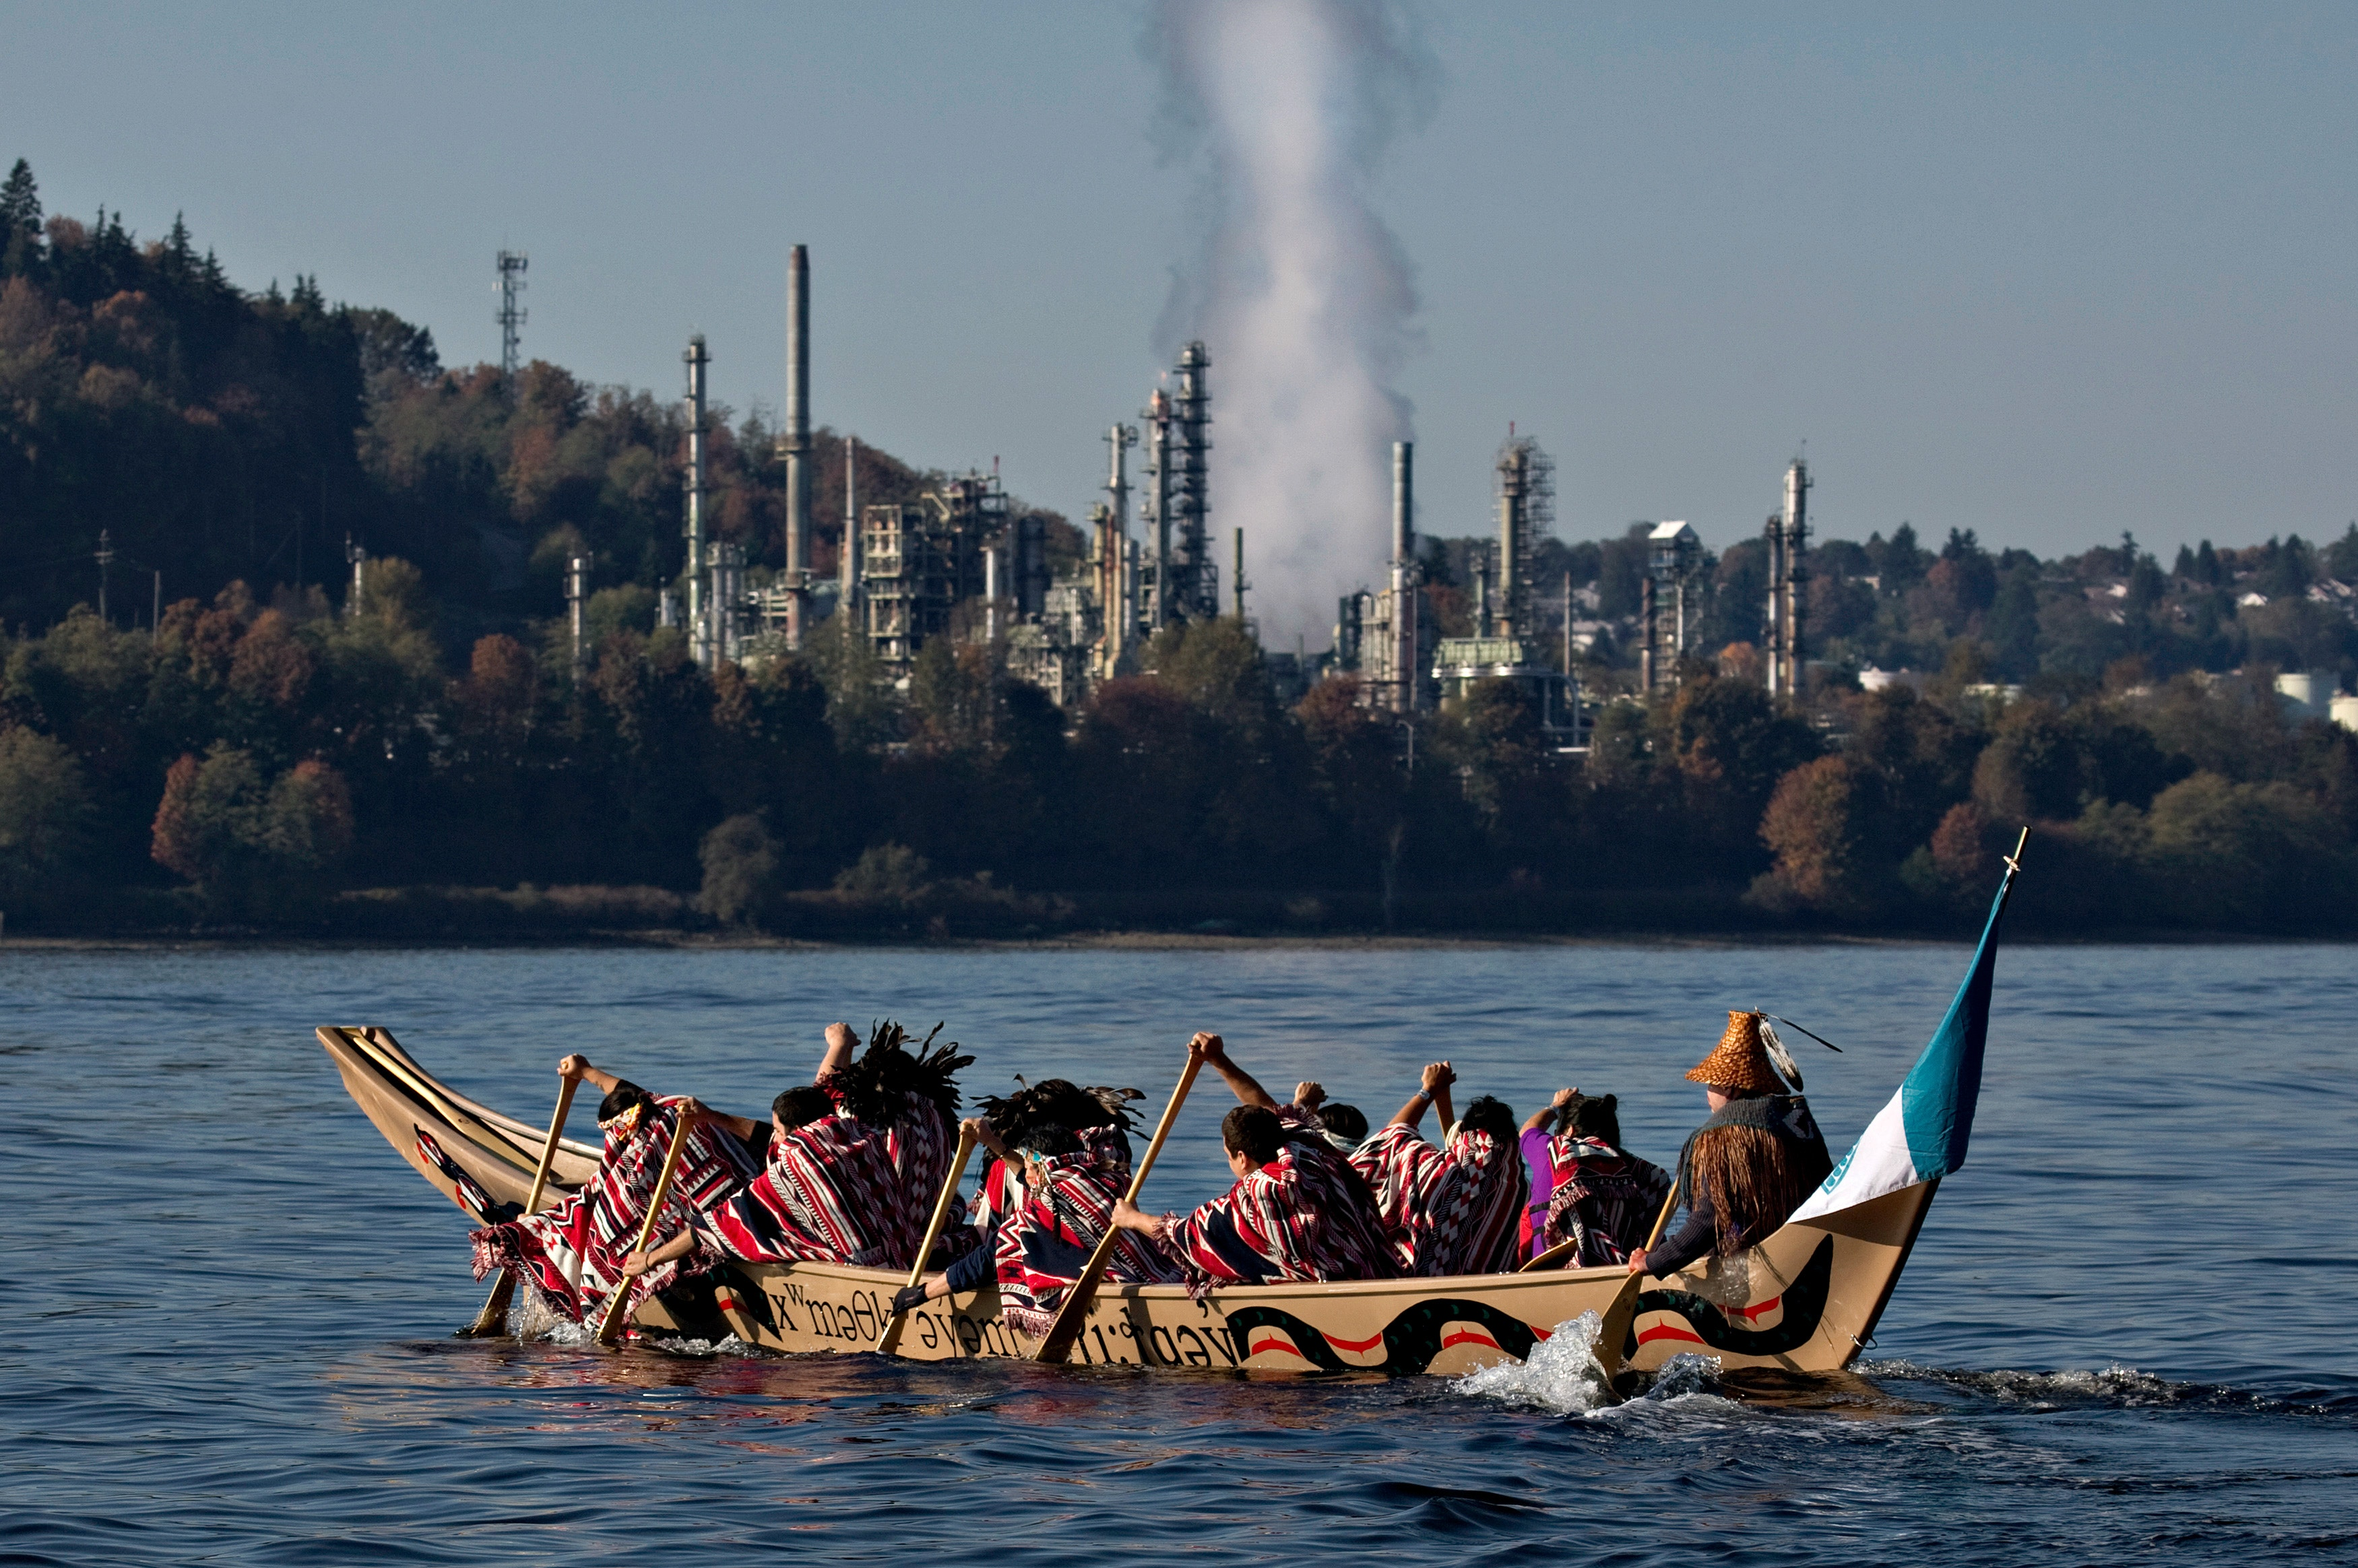 Members of the First Nation Tsleil-Waututh, Squamish and Musqueam bands paddle in a traditional canoe during a Thanksgiving protest in North Vancouver, British Columbia October 14, 2013. The group are protesting the Trans Mountain Pipeline Expansion by energy company Kinder-Morgan and the increase of tanker traffic in the Burrard Inlet. REUTERS/Andy Clark (CANADA - Tags: CIVIL UNREST ENERGY ENVIRONMENT SOCIETY) - GM1E9AF092501